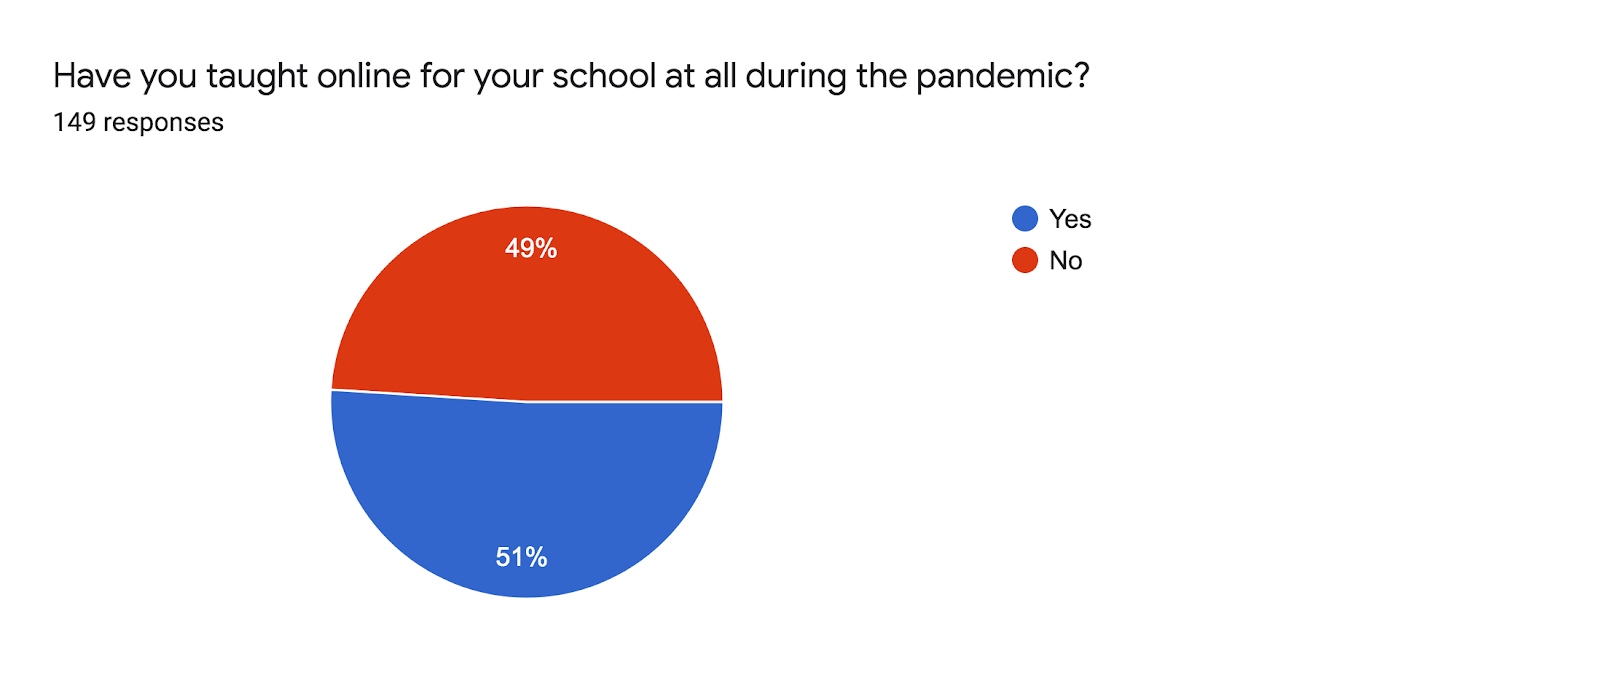 Forms response chart. Question title: Have you taught online for your school at all during the pandemic?. Number of responses: 149 responses.